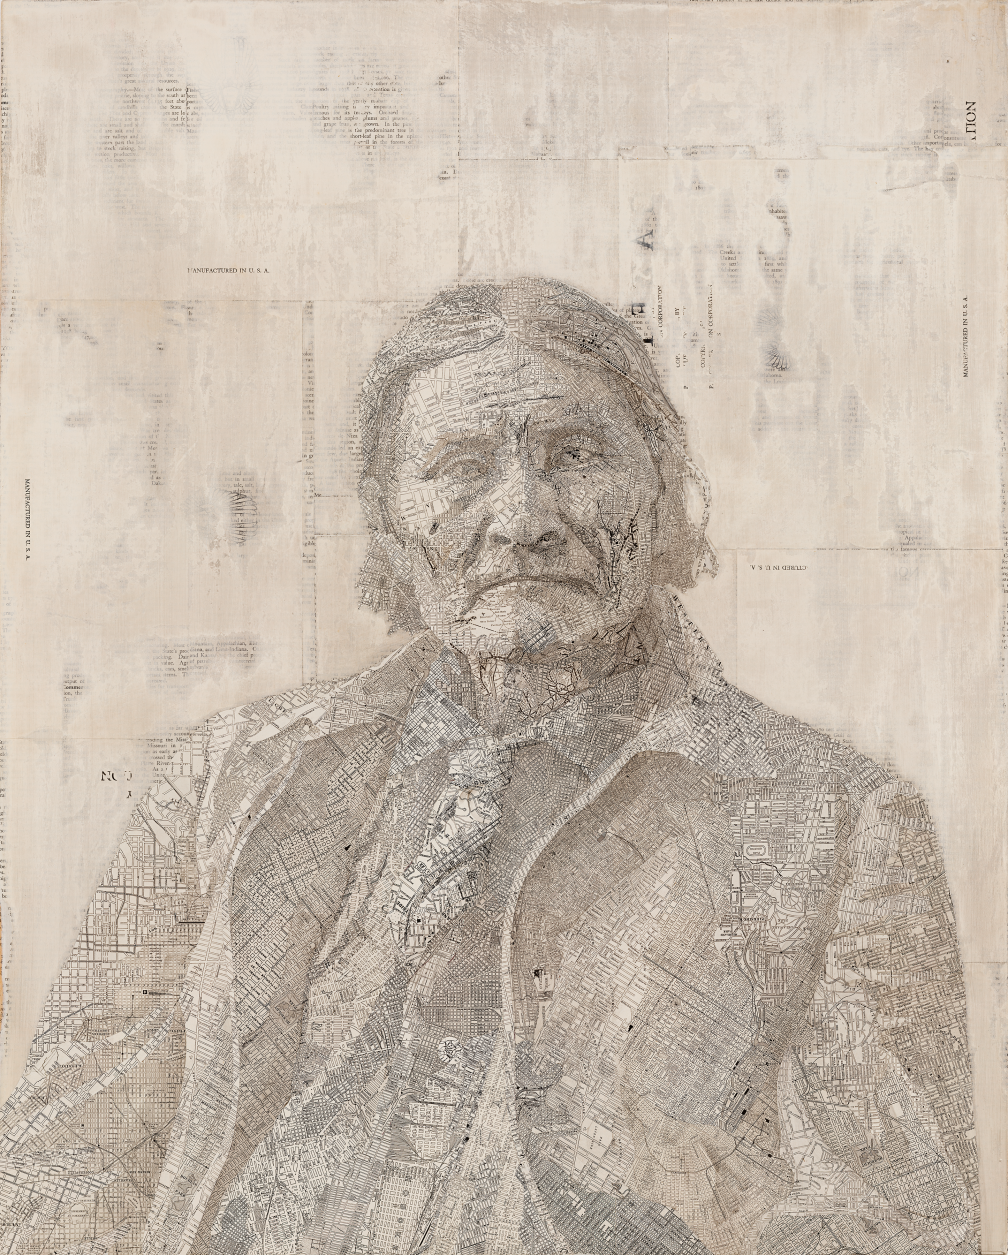 Geronimo, 2007 Inlaid maps on wood panel 30 x 24 inches